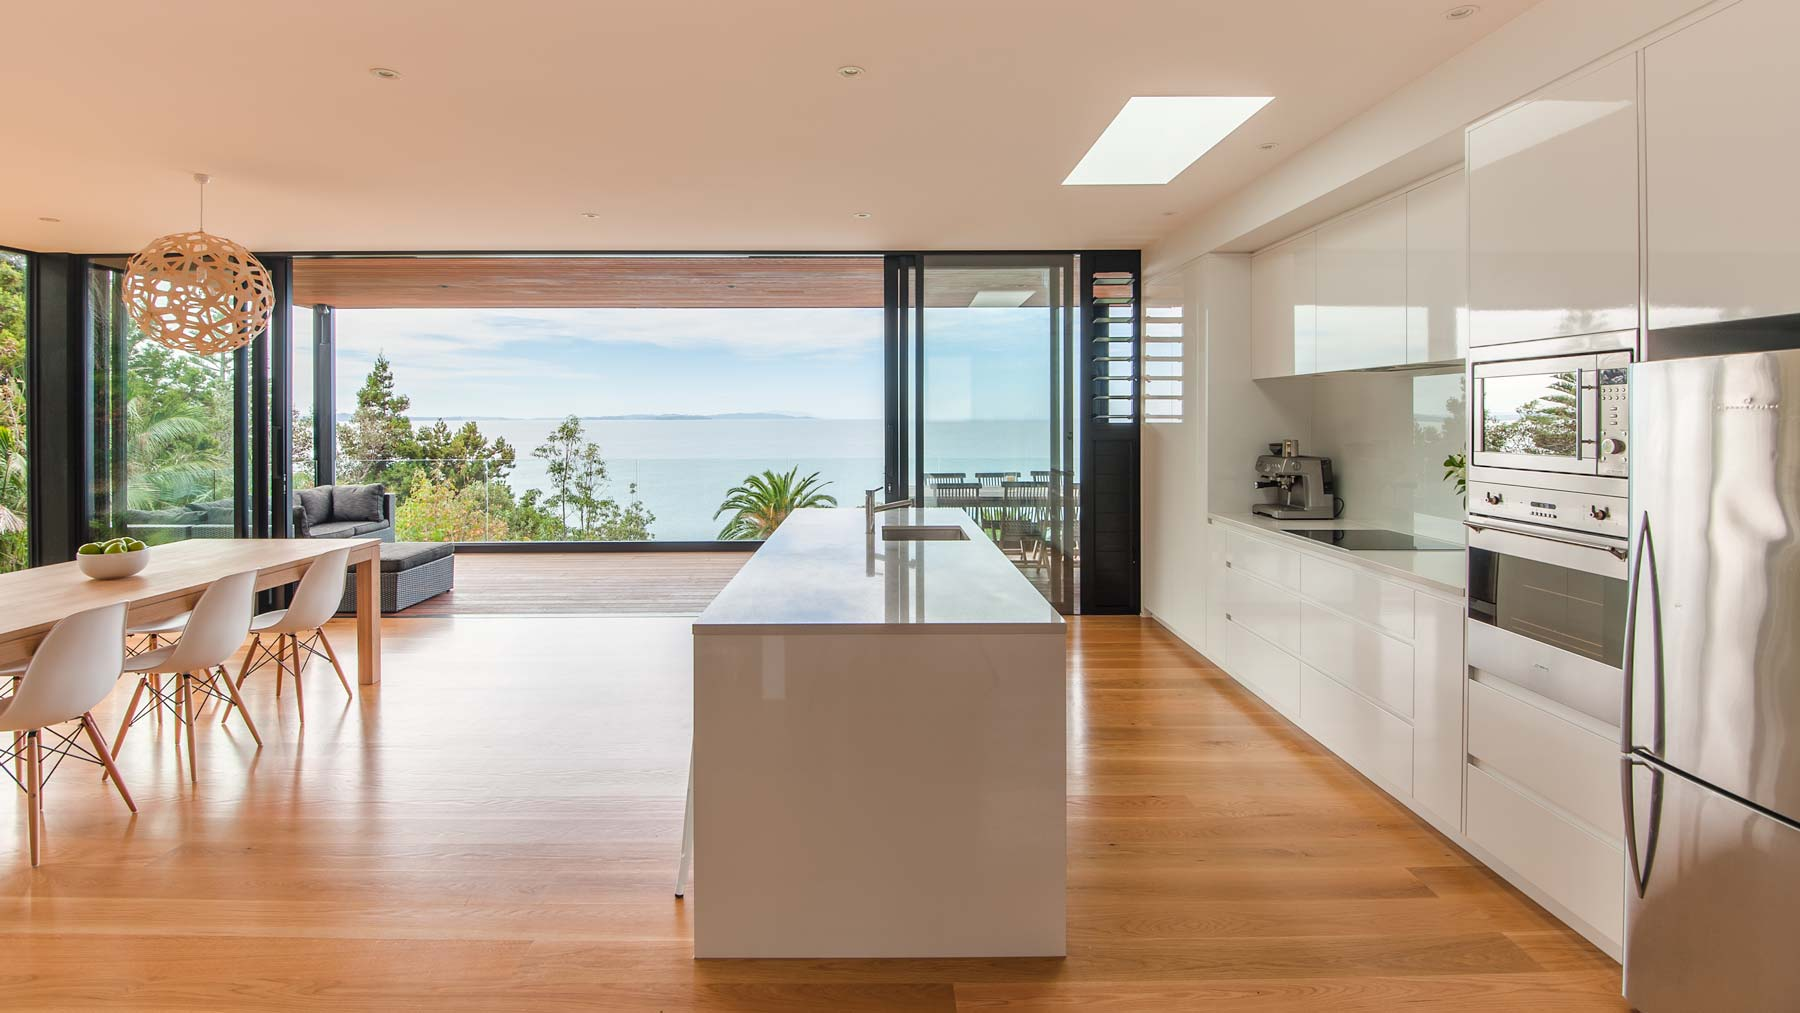 Kitchen, dining, and Great Barrier Island from the main entrance.